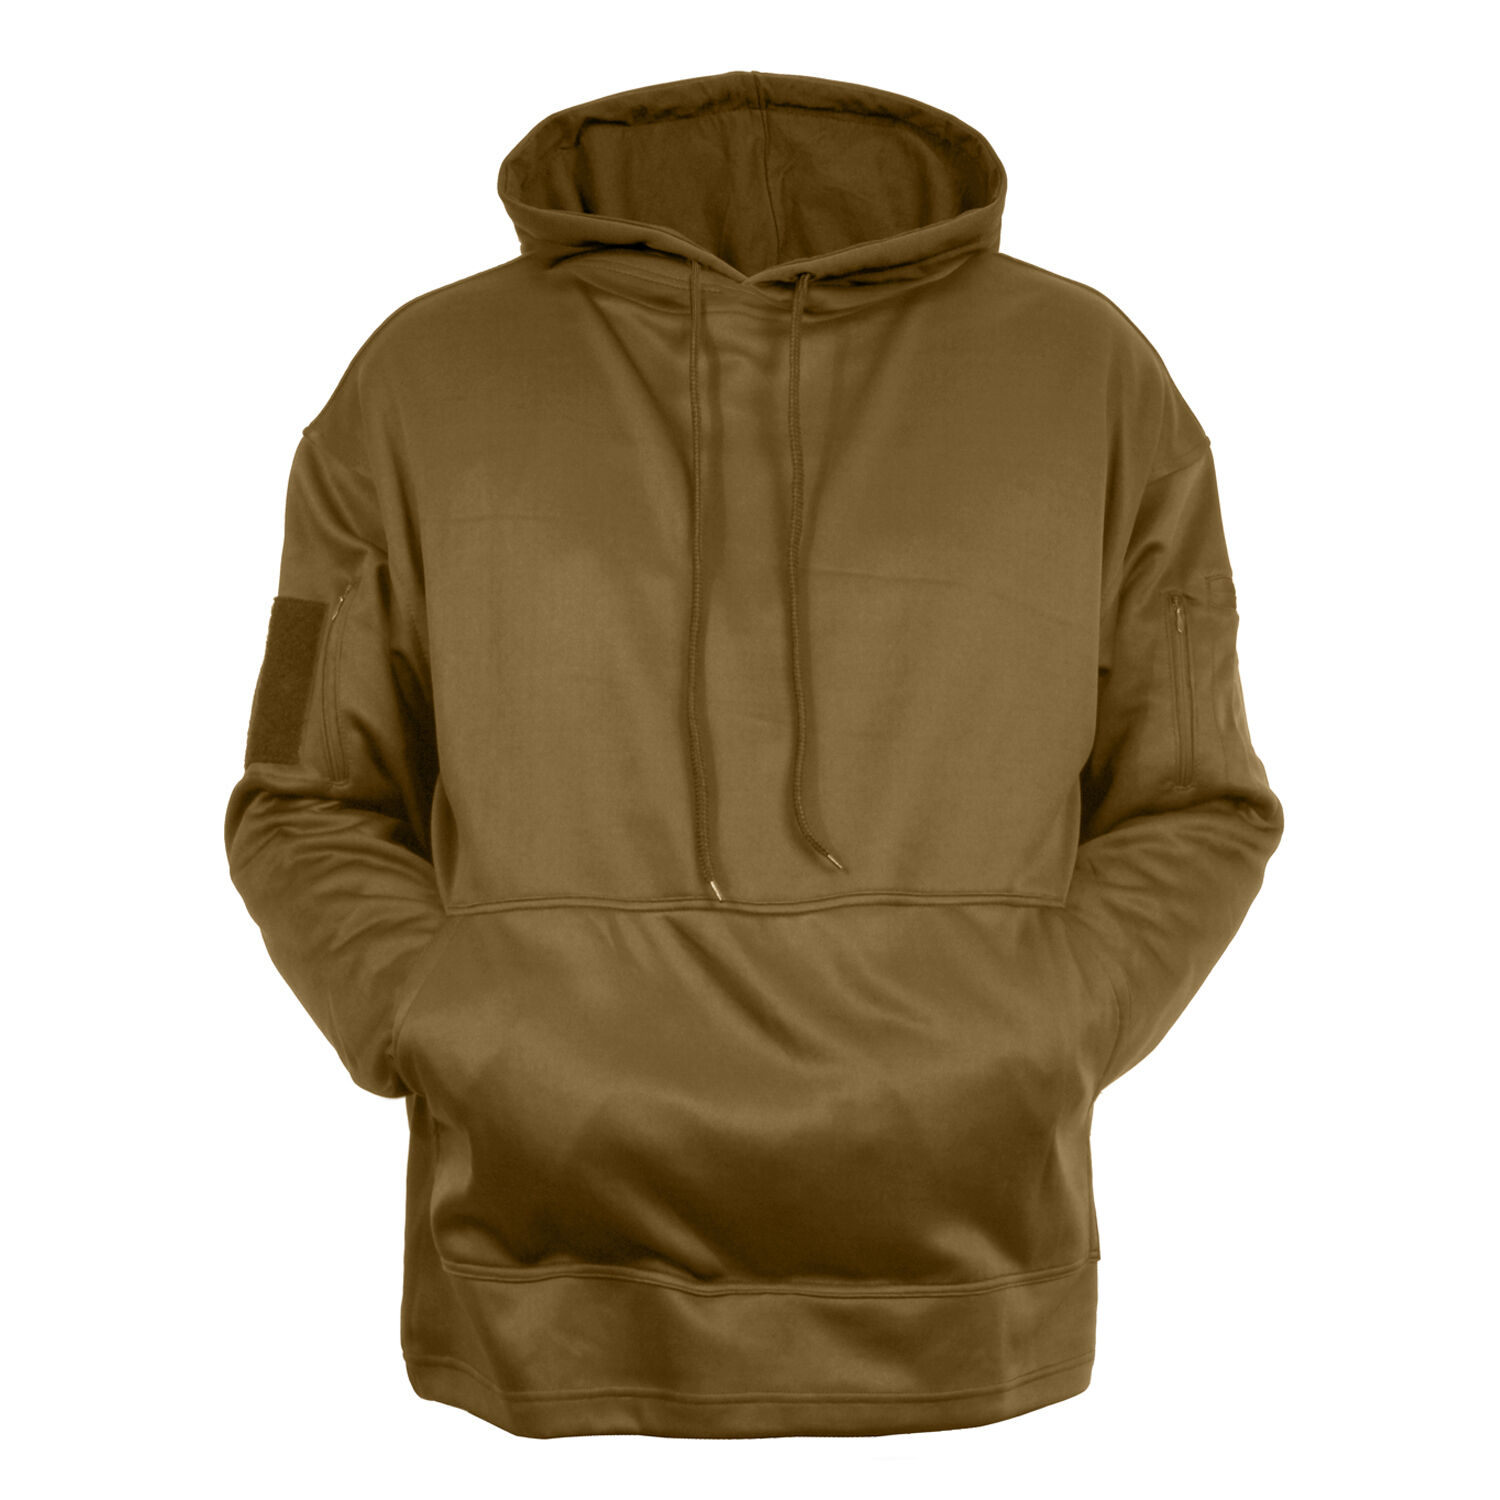 Tactical ccw hoodie hooded sweatshirt coyote brown concealed carry redhco 2081